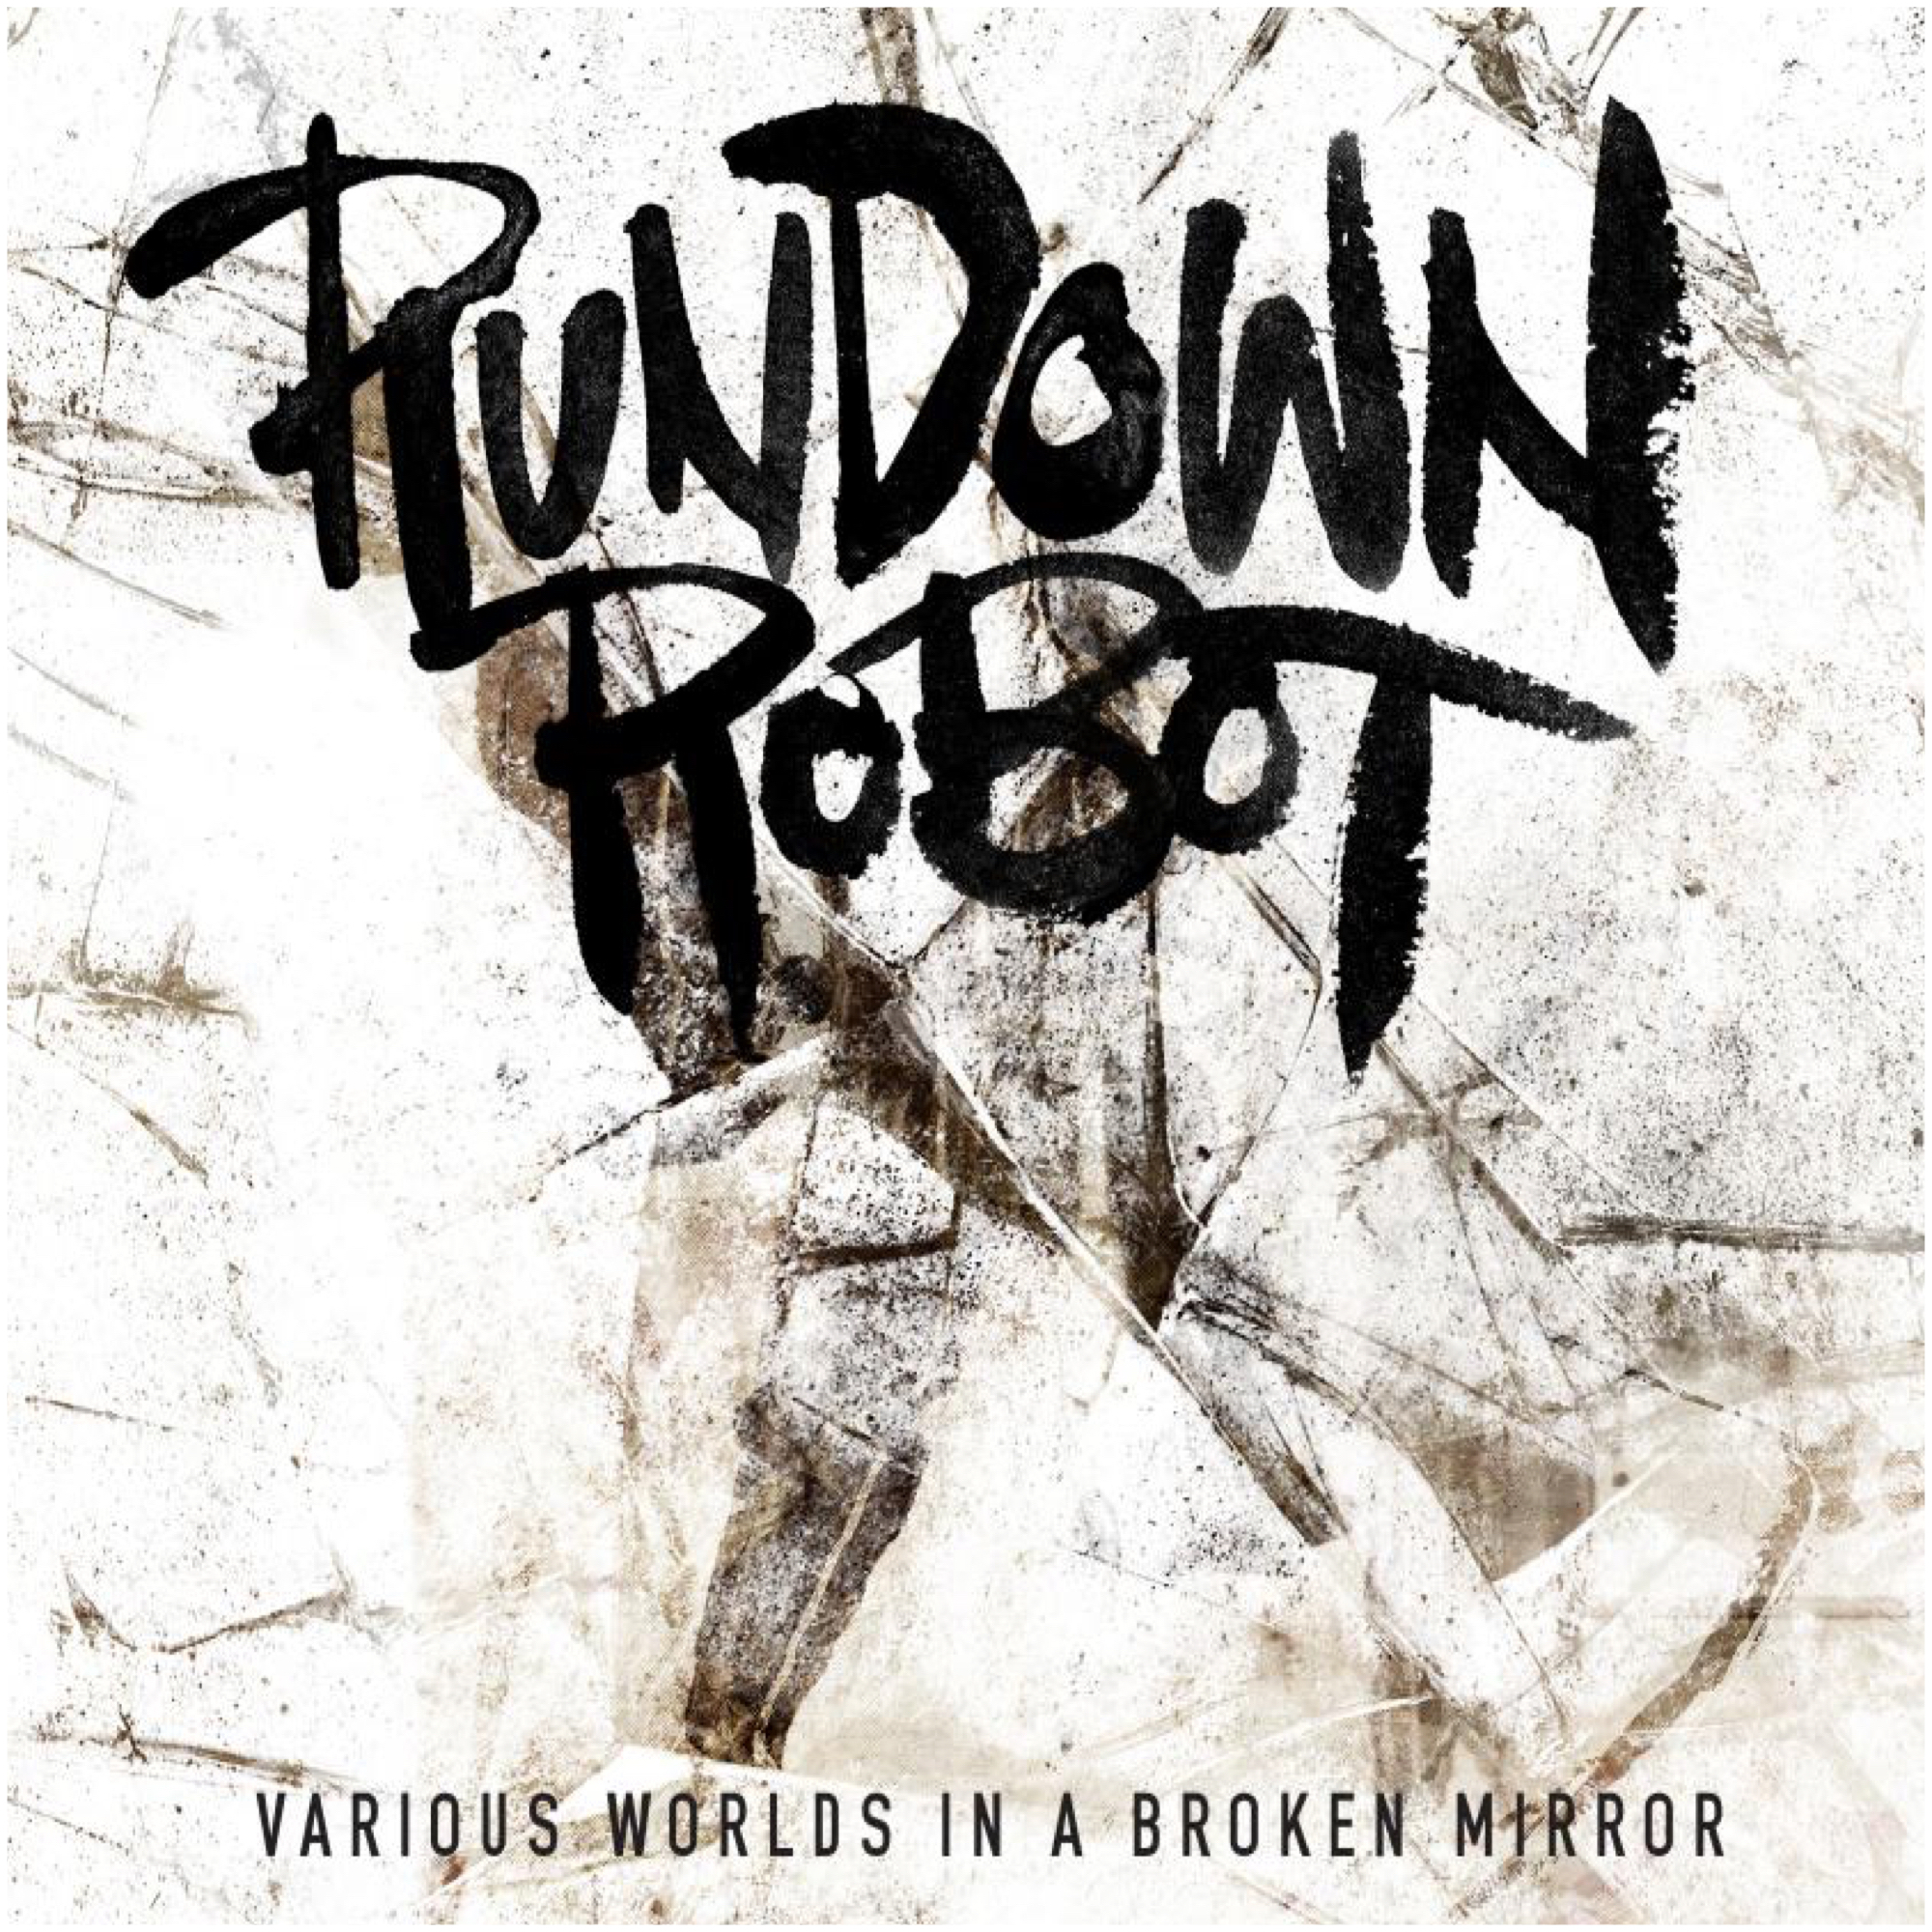 Rundown Robot - Various Worlds